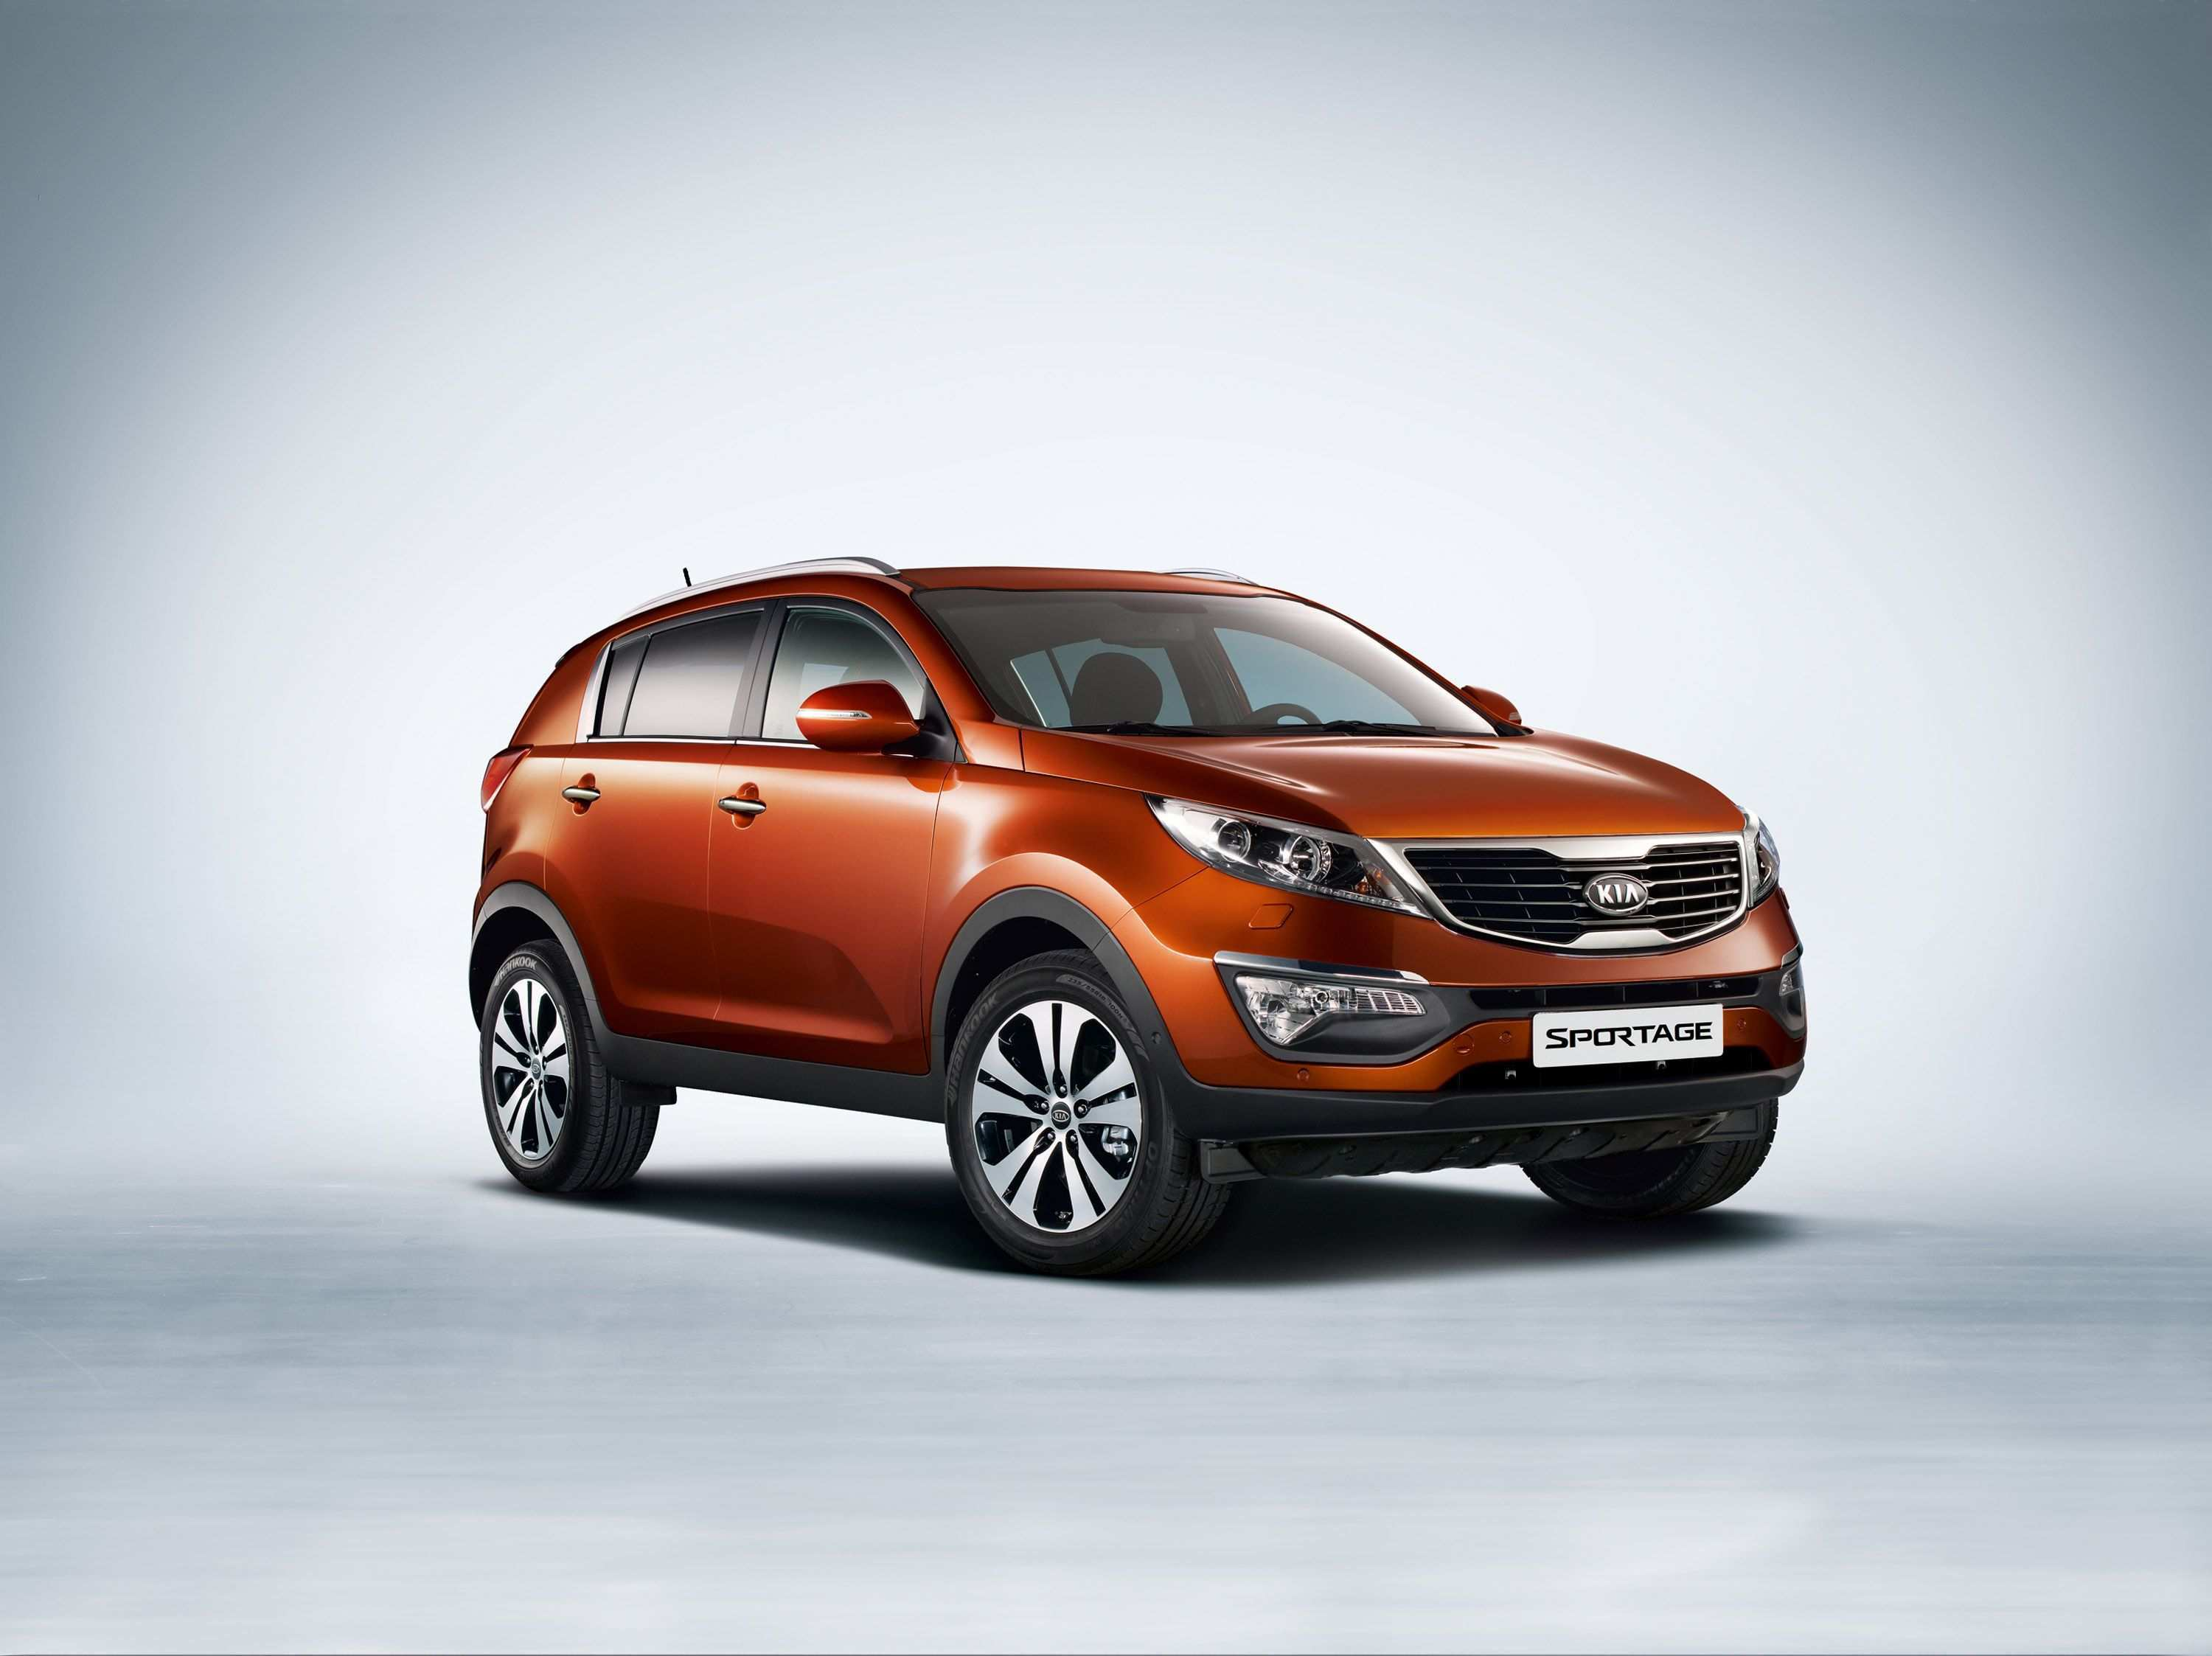 56 Great 2020 Kia Sportage Brochure Reviews by 2020 Kia Sportage Brochure